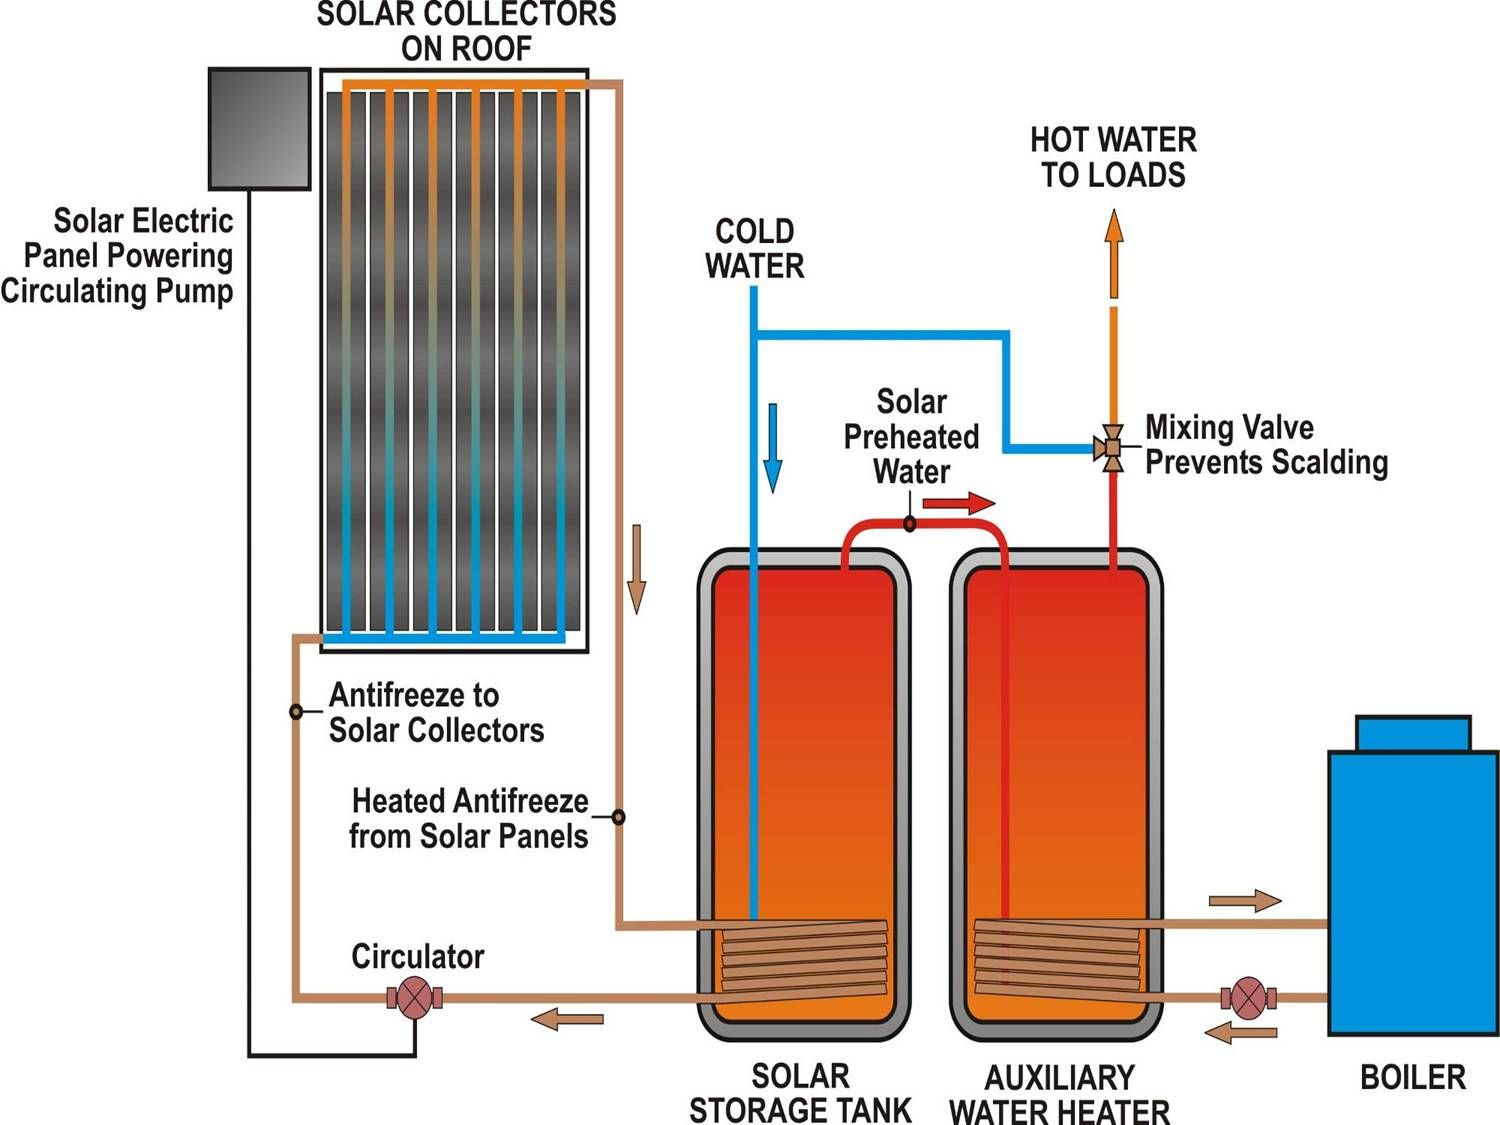 Domestic Solar Hot Water Diagram | offthegrid | Pinterest ...